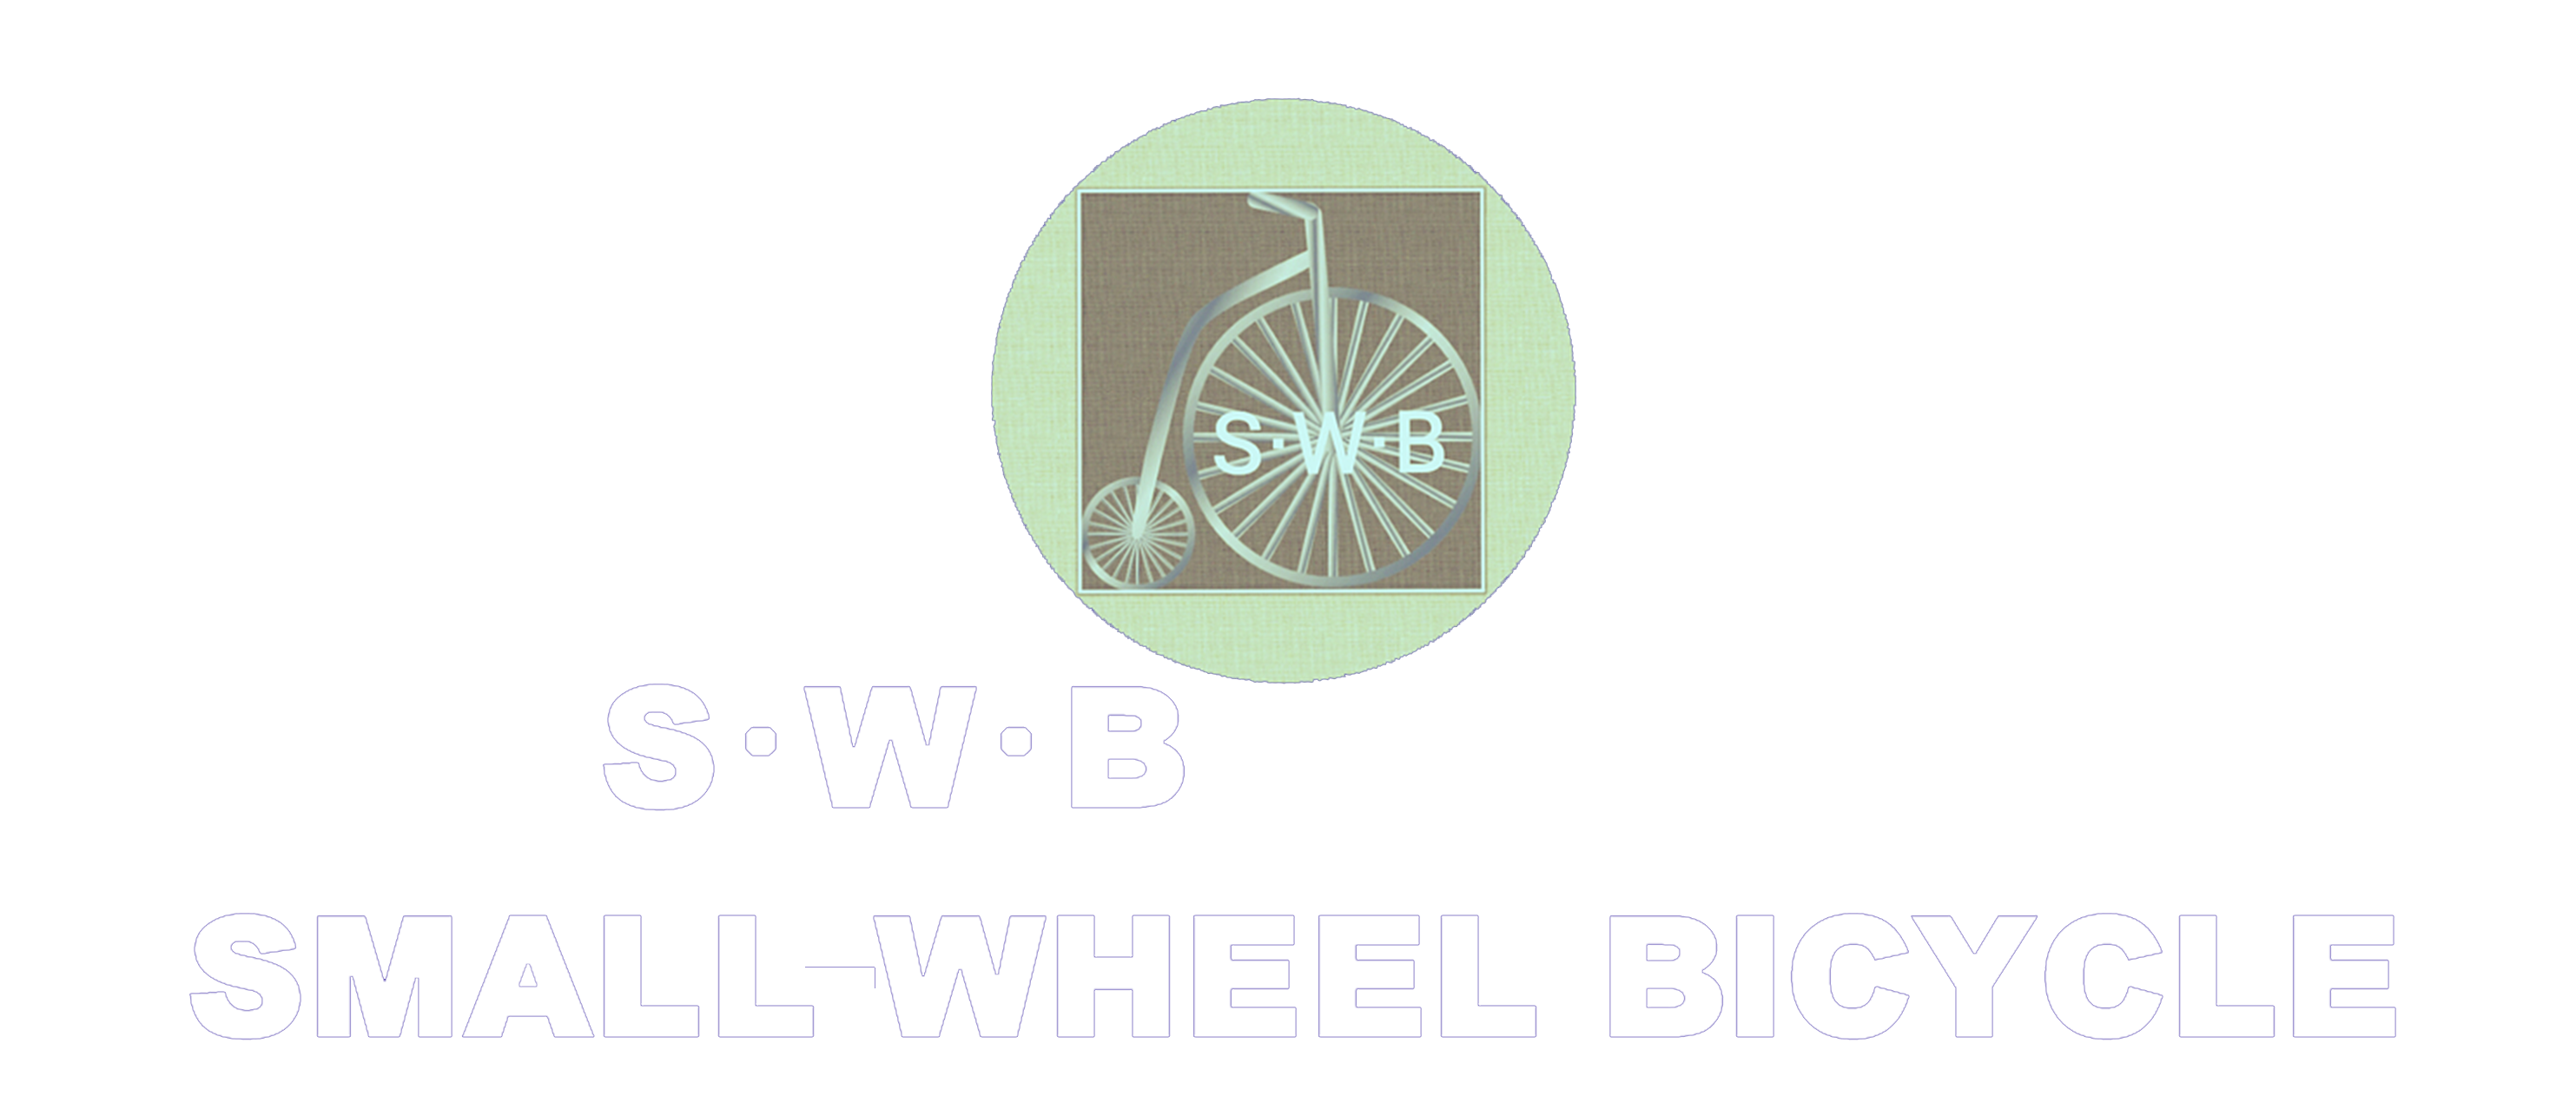 S・W・B SMALL-WHEEL BICYCLE